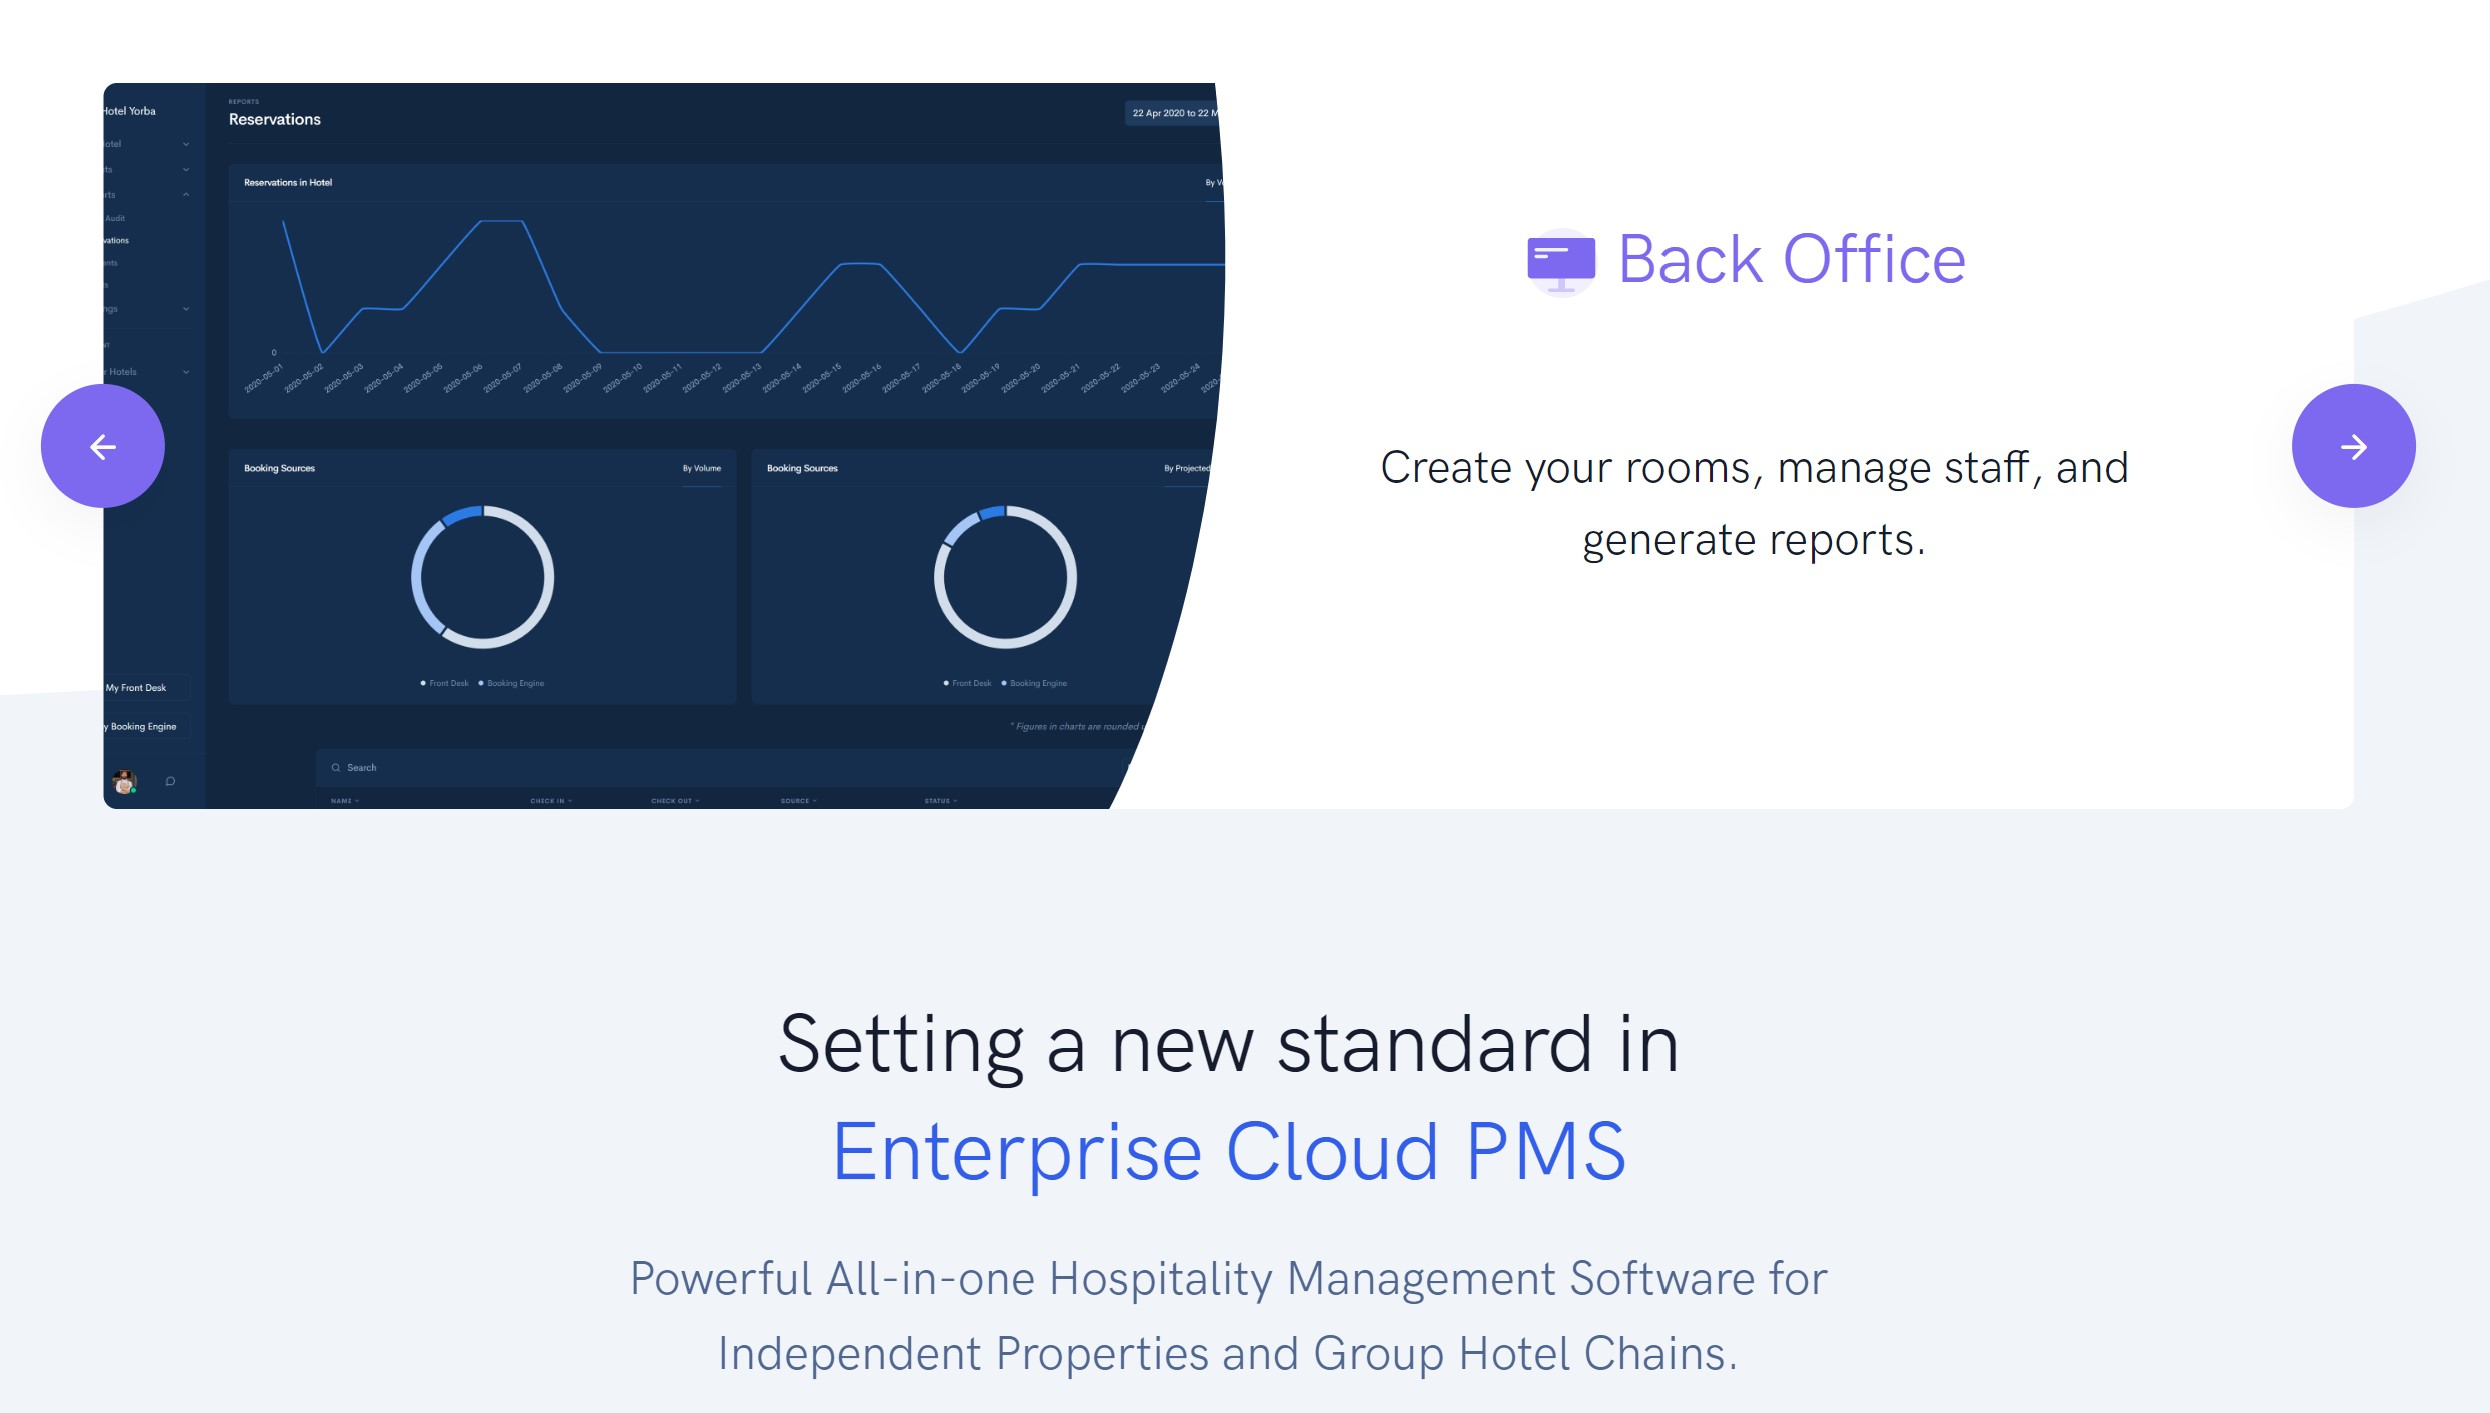 Hotel Back Office Our hotel Back Office is the main entry point to manage your property. Setup your rooms, register staff, and generate reports